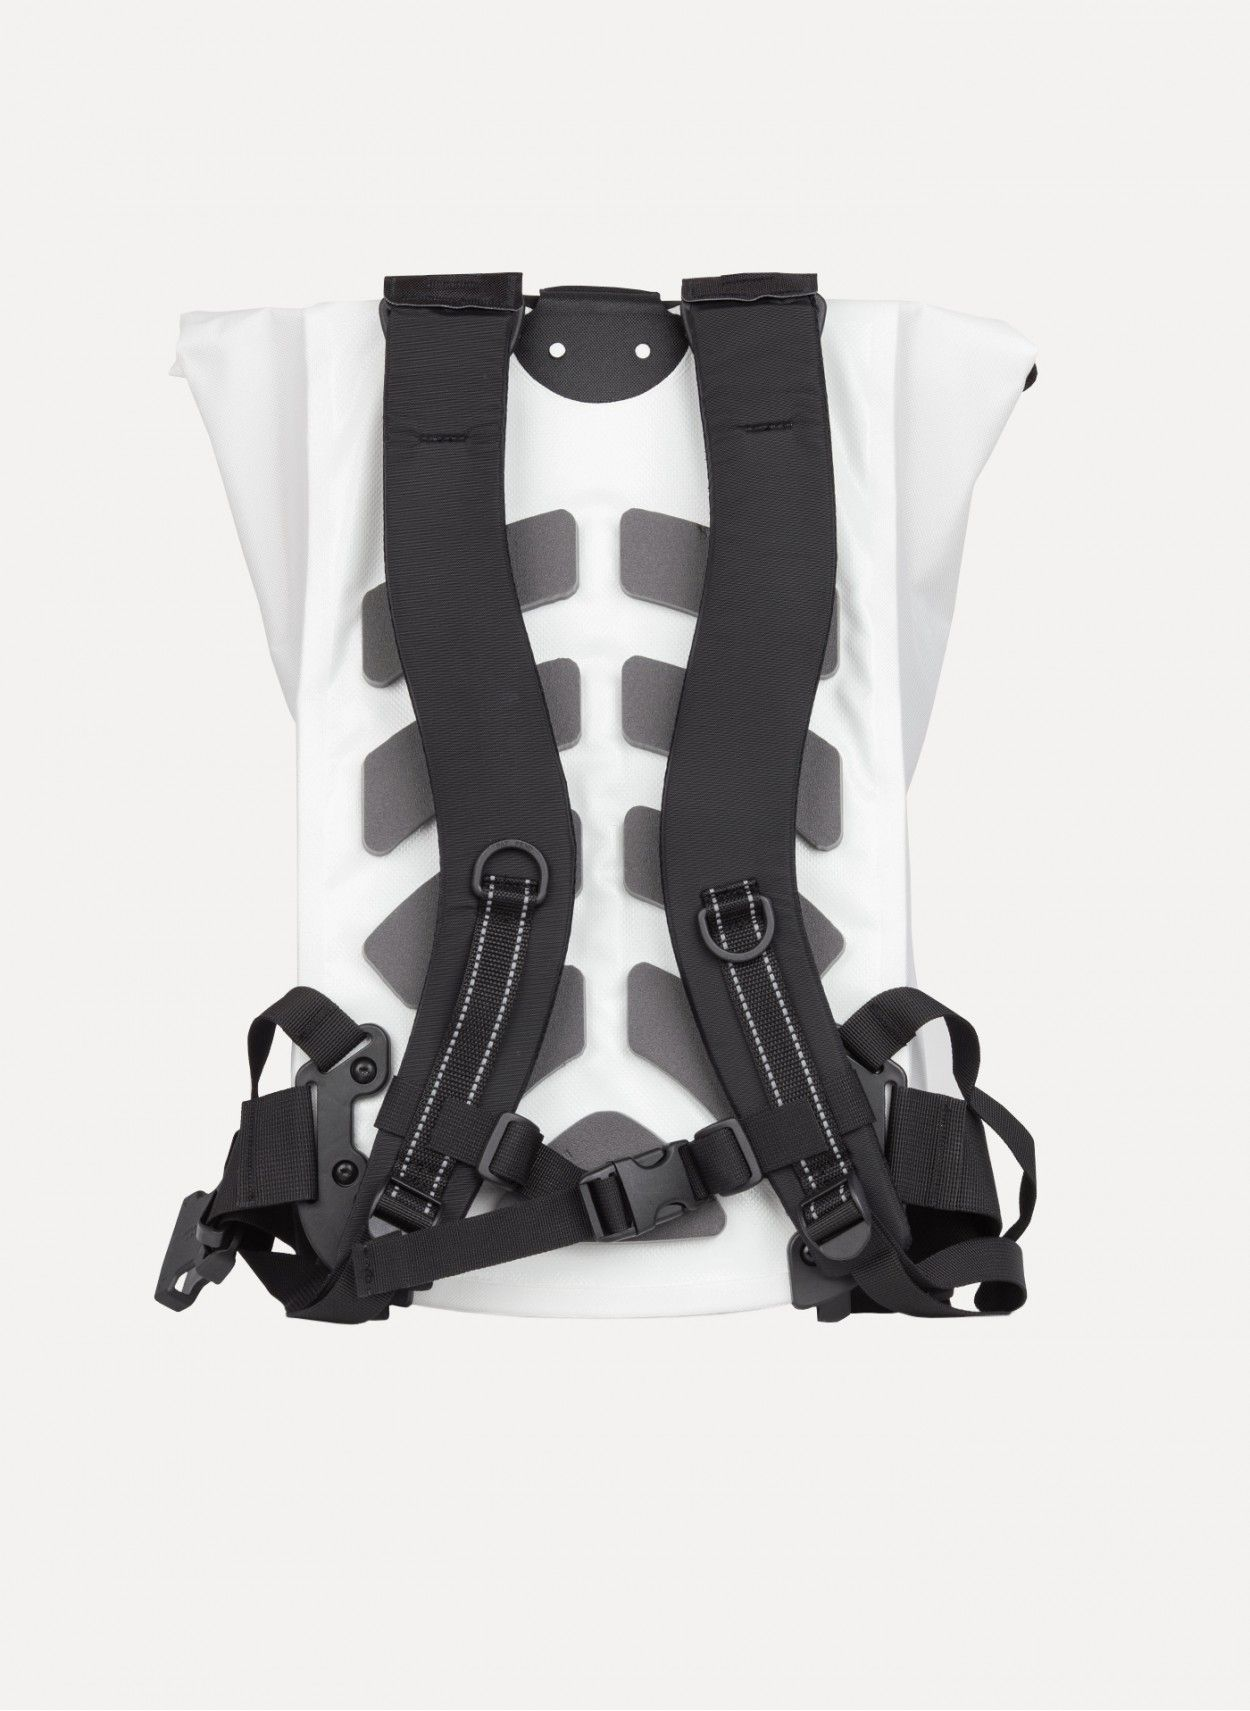 11 by Boris Bidjan Saberi - VELOCITY Messenger Backpack https://cruvoir.com/11-by-bbs-boris-bidjan-saberi/4354-velocity-messenger-backpack-white